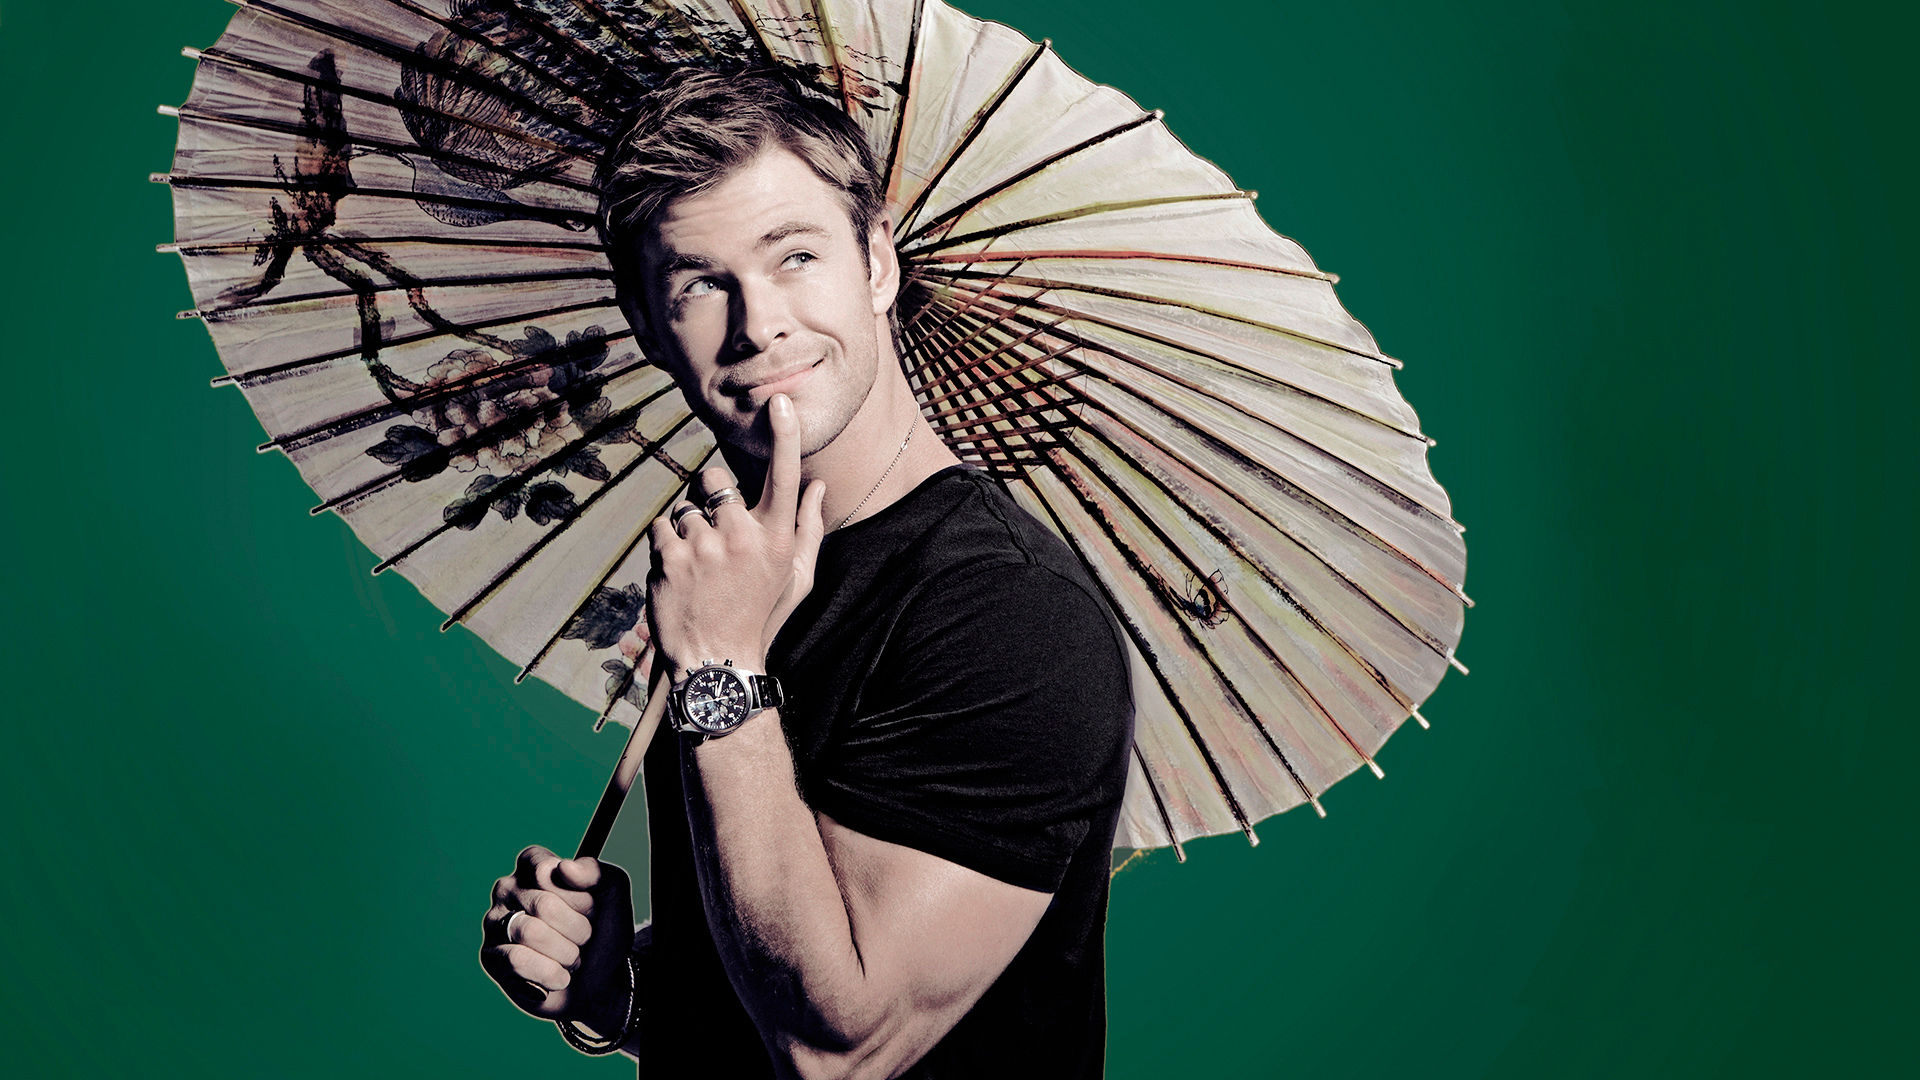 chris-hemsworth-amusing-umbrella-smile-1920%C3%971080-wallpaper-wp3803774